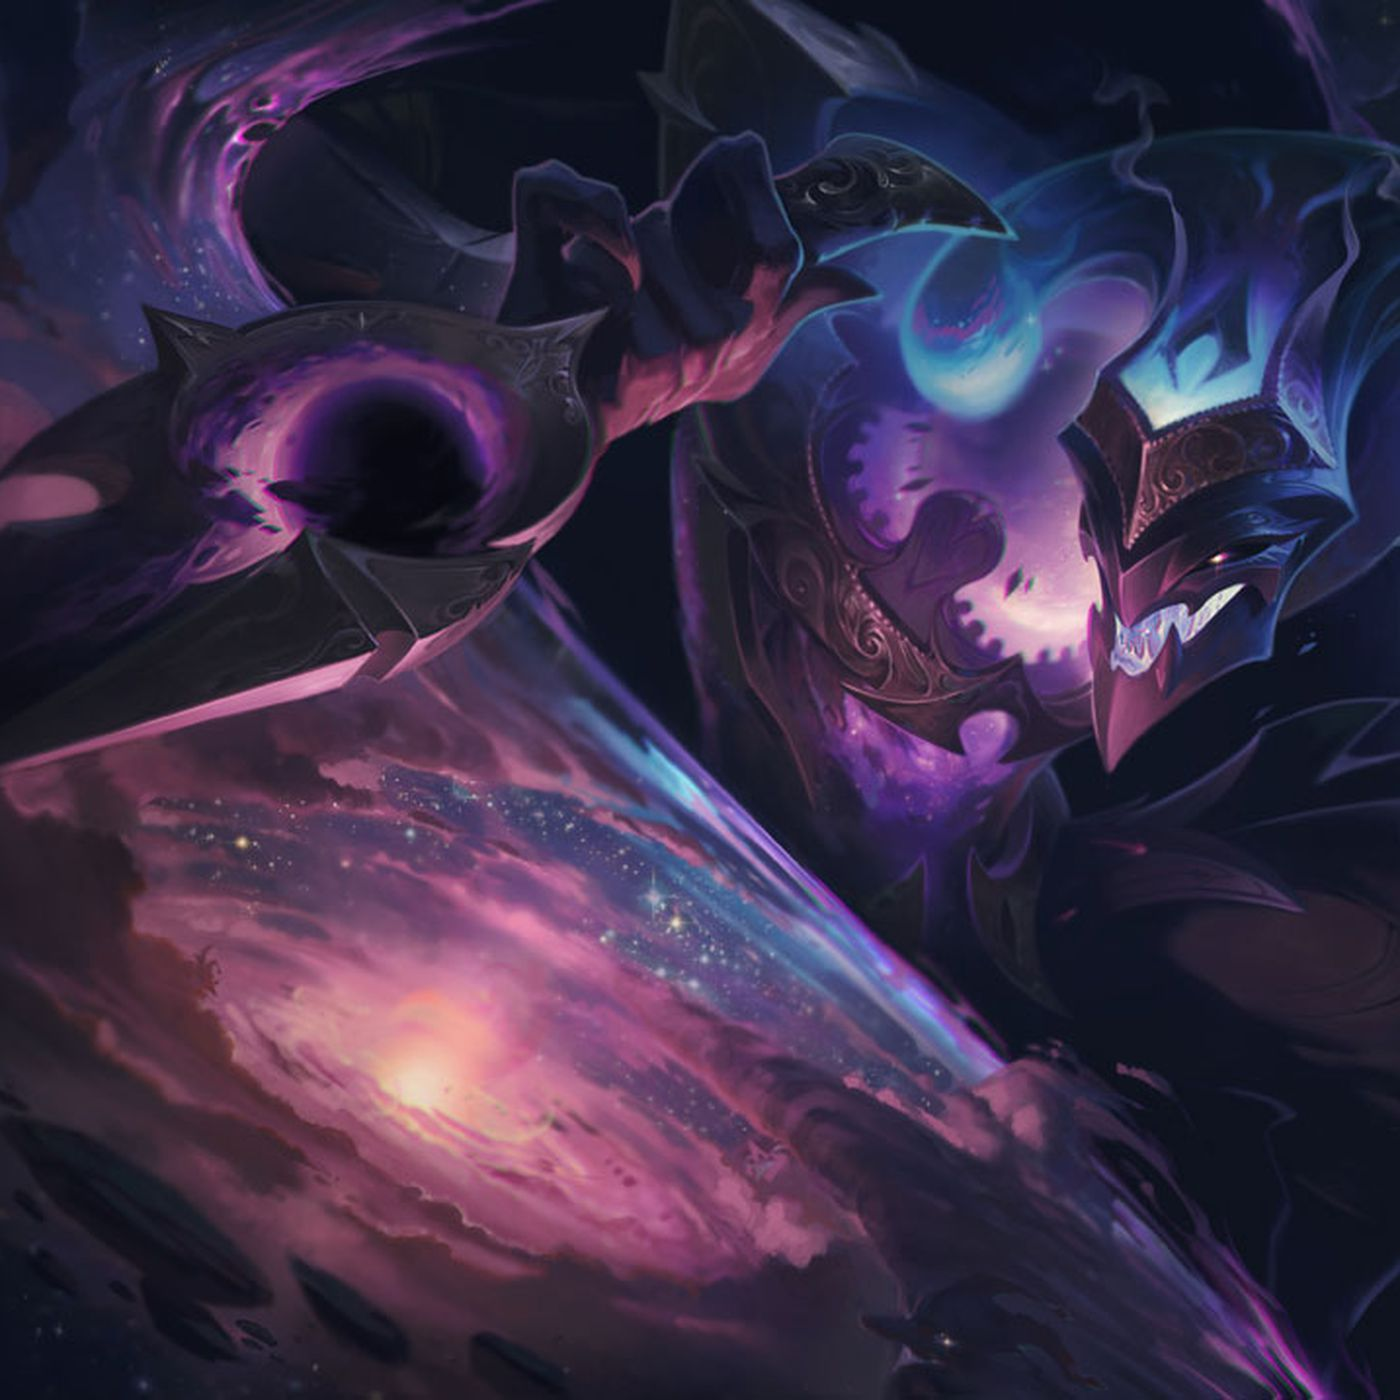 Dark Star skins: Shaco, Karma, and Jhin arrive from space